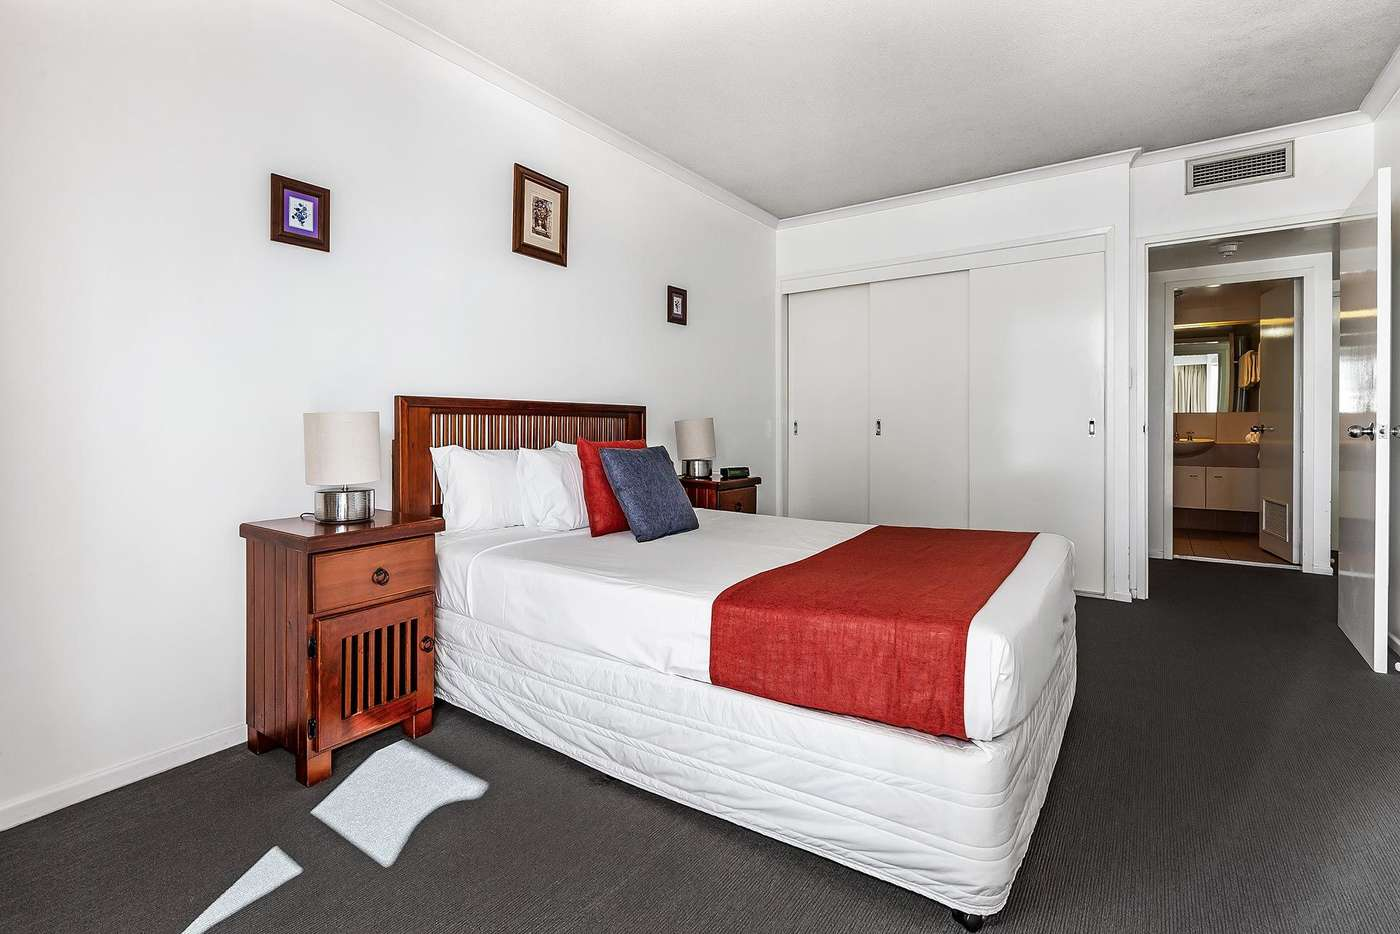 Sixth view of Homely apartment listing, 611/44 Ferry Street, Kangaroo Point QLD 4169